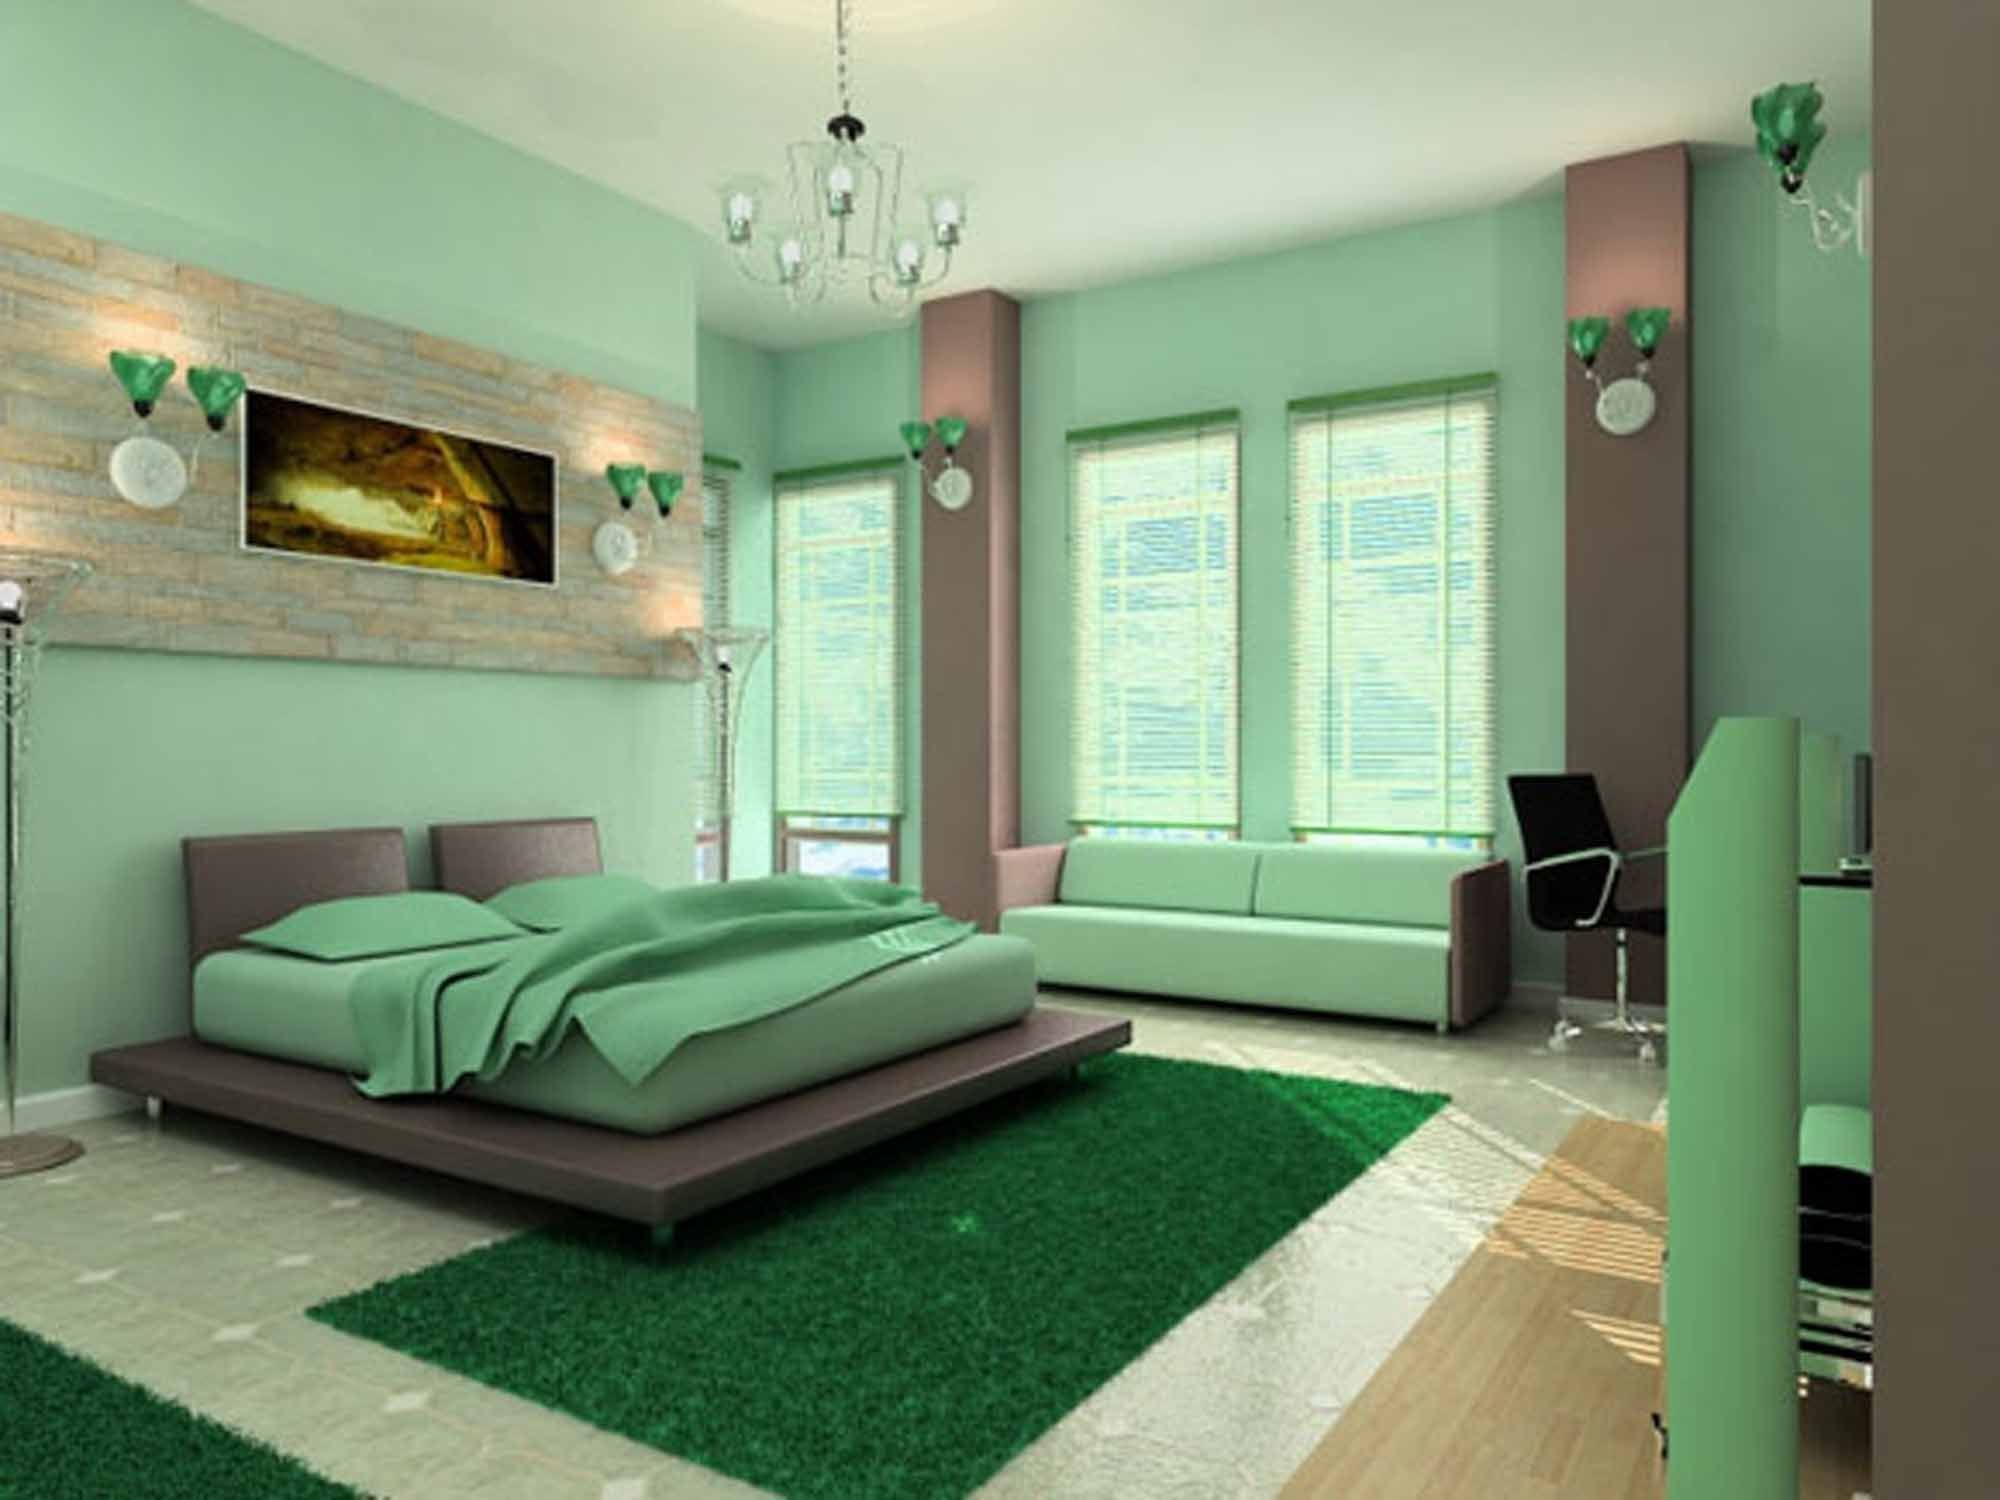 45 Images Of Amusing Light Green Bedroom Walls Hausratversicherungkosten